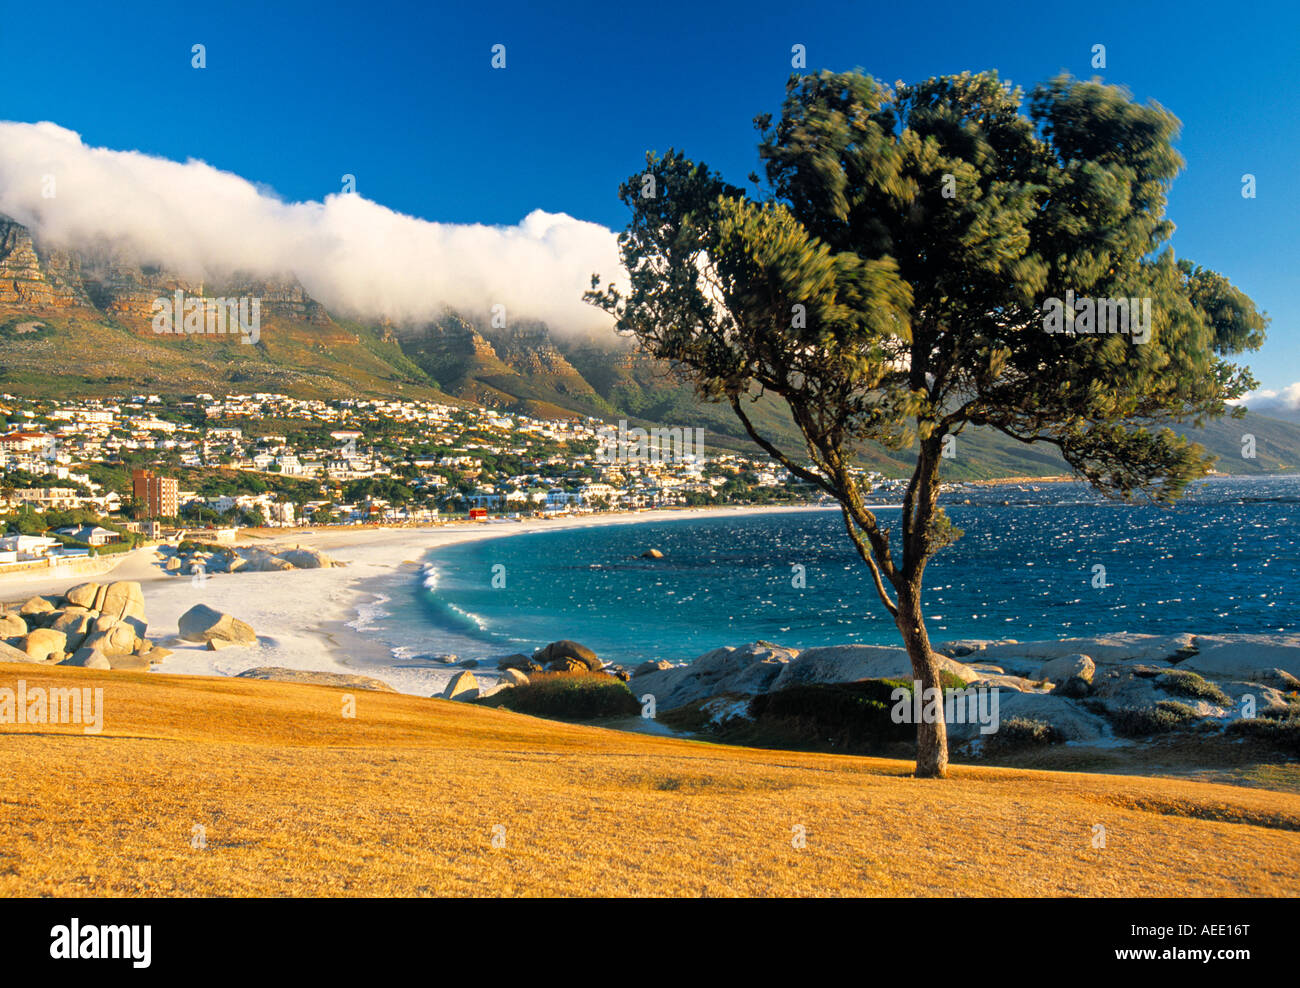 Clifton Bay et de la plage, Le Cap, Afrique du Sud Photo Stock